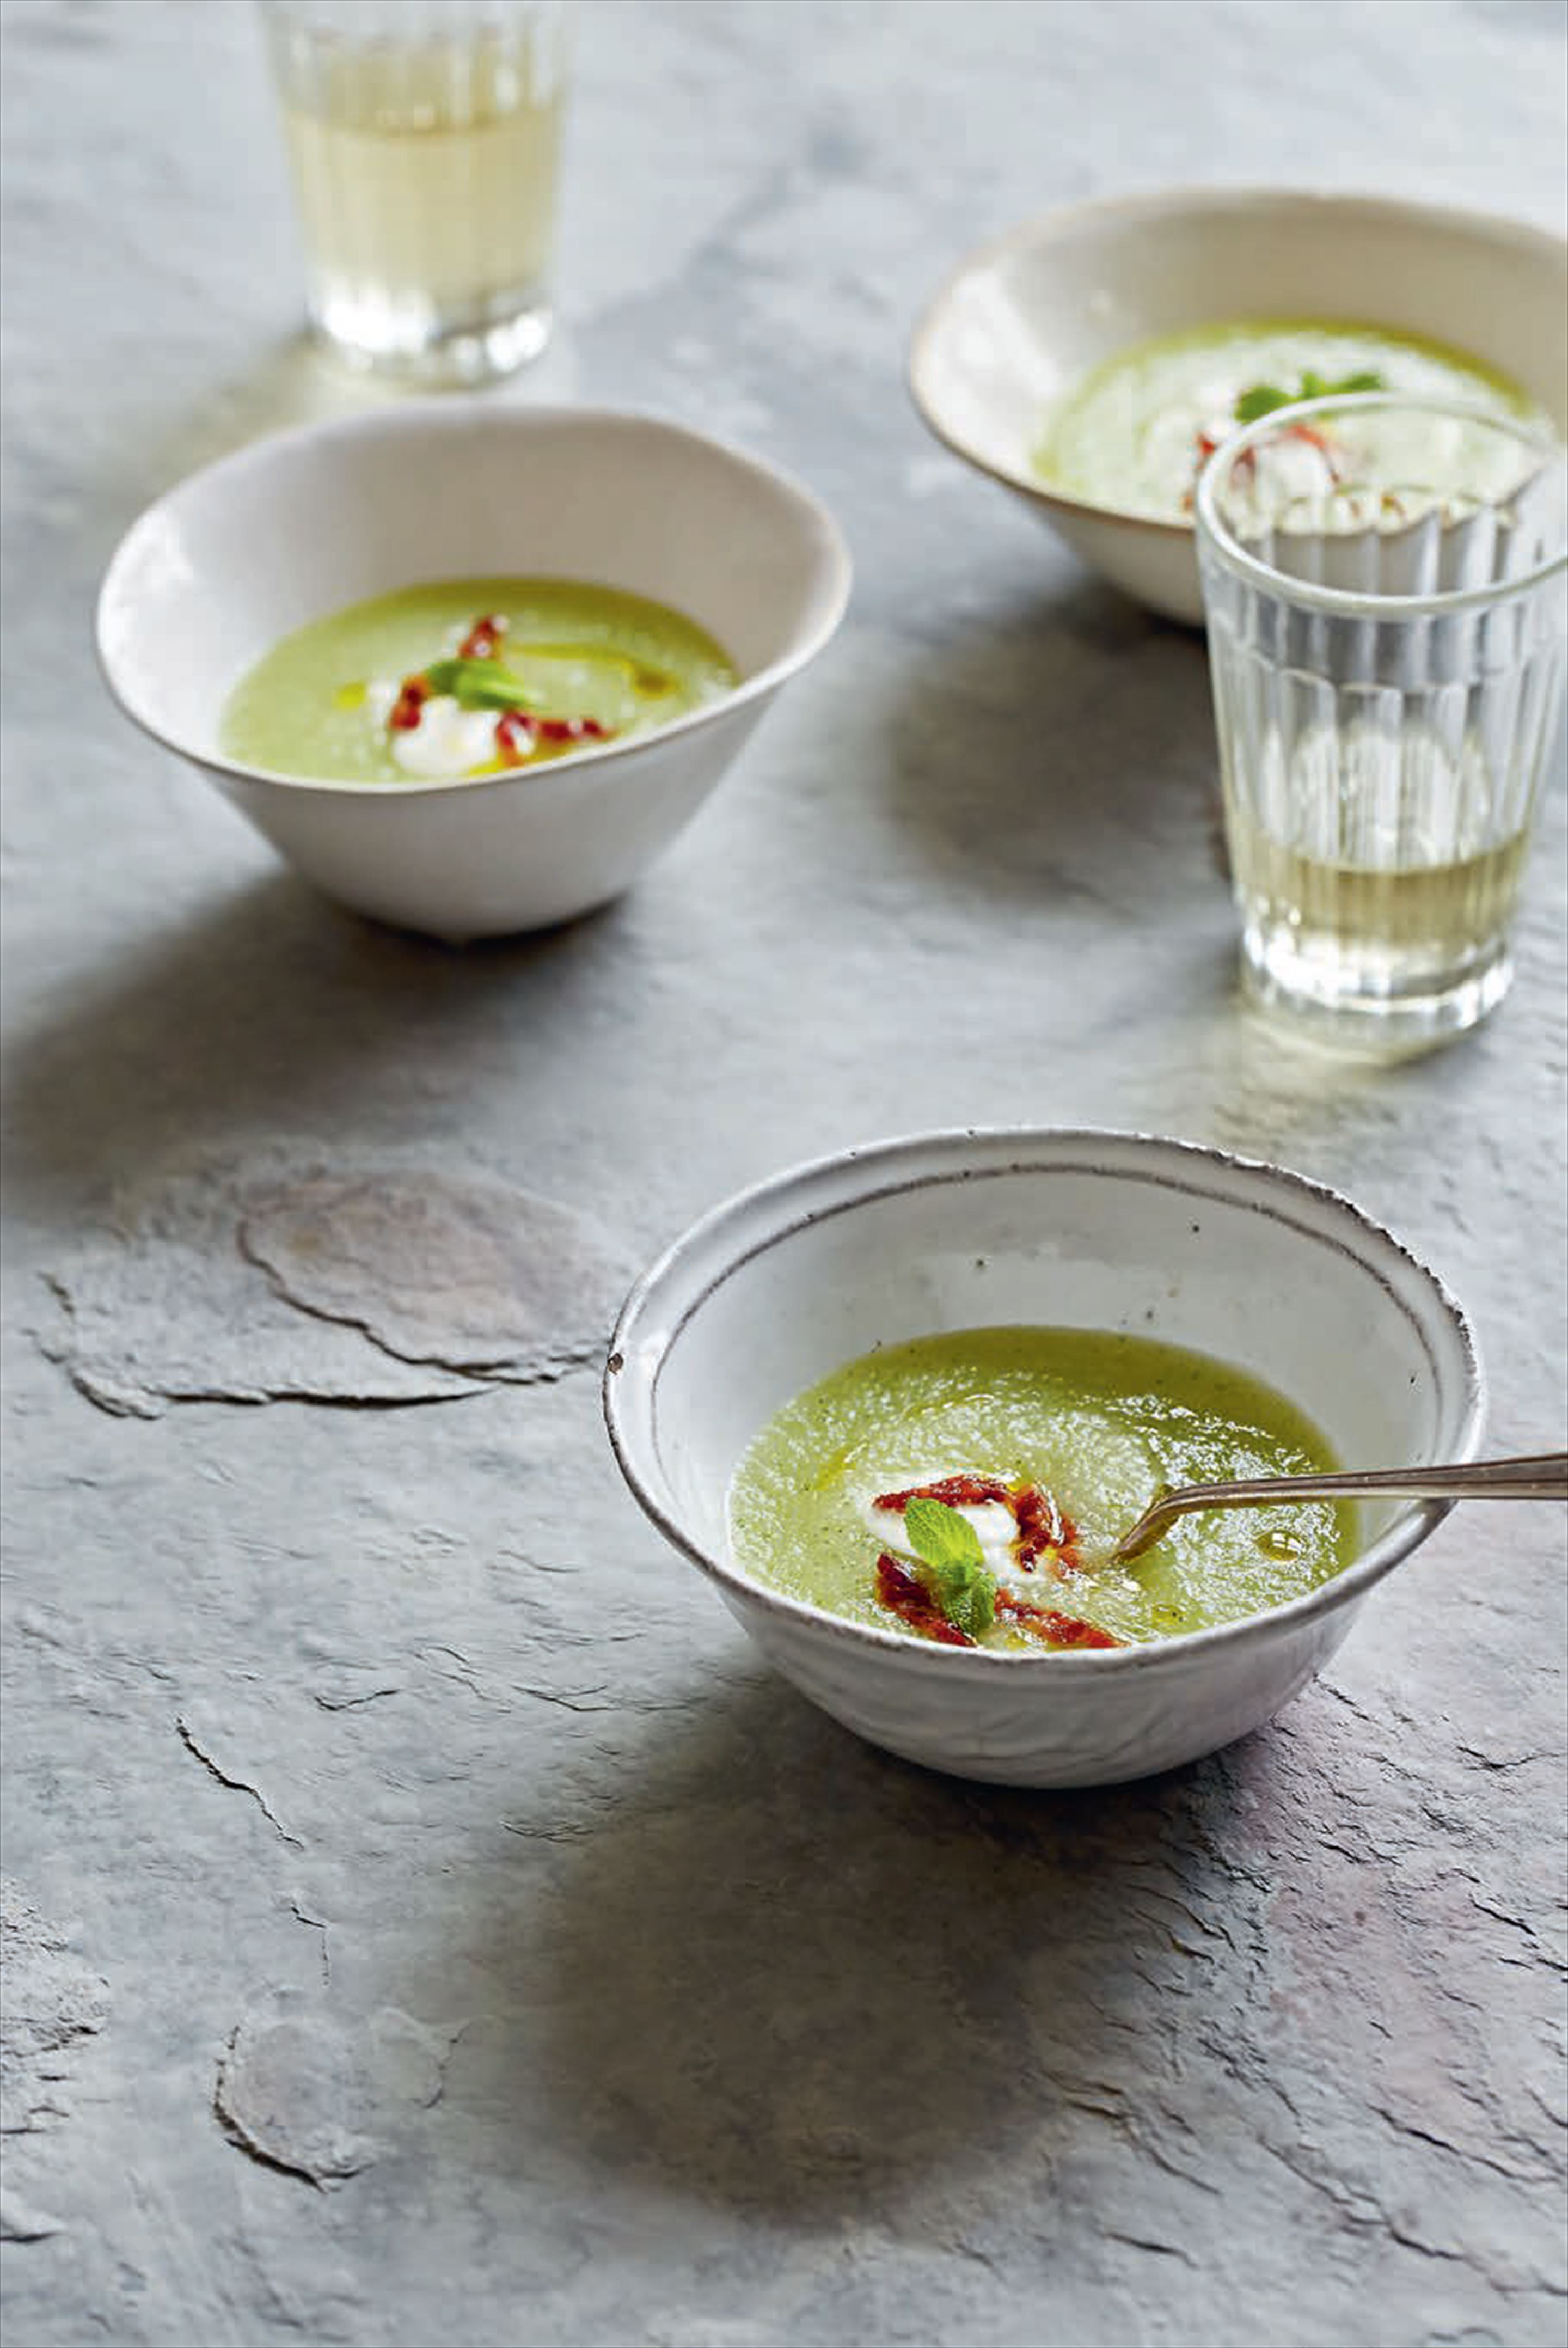 Melon & mint soup